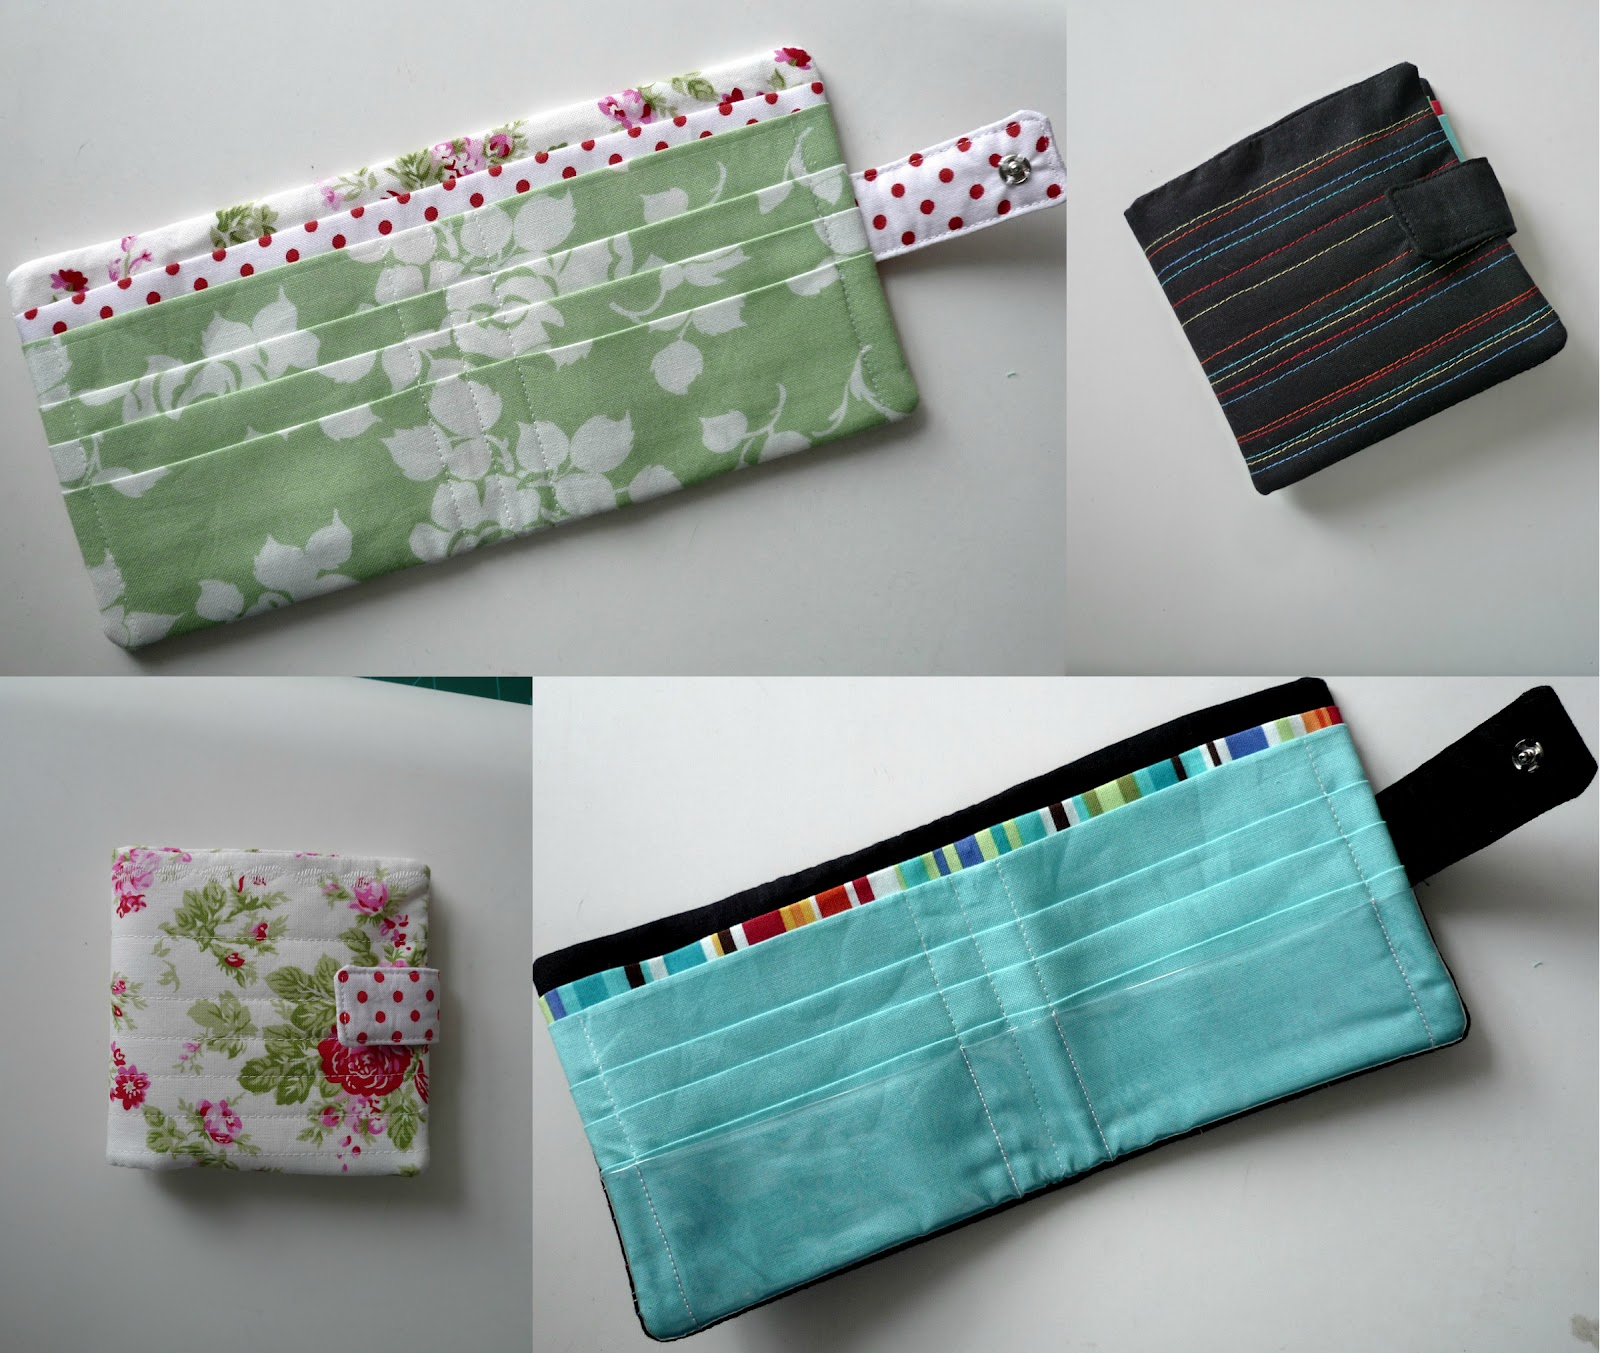 Fairyface designs sew get started fabric wallet tutorial for Cloth material for sewing